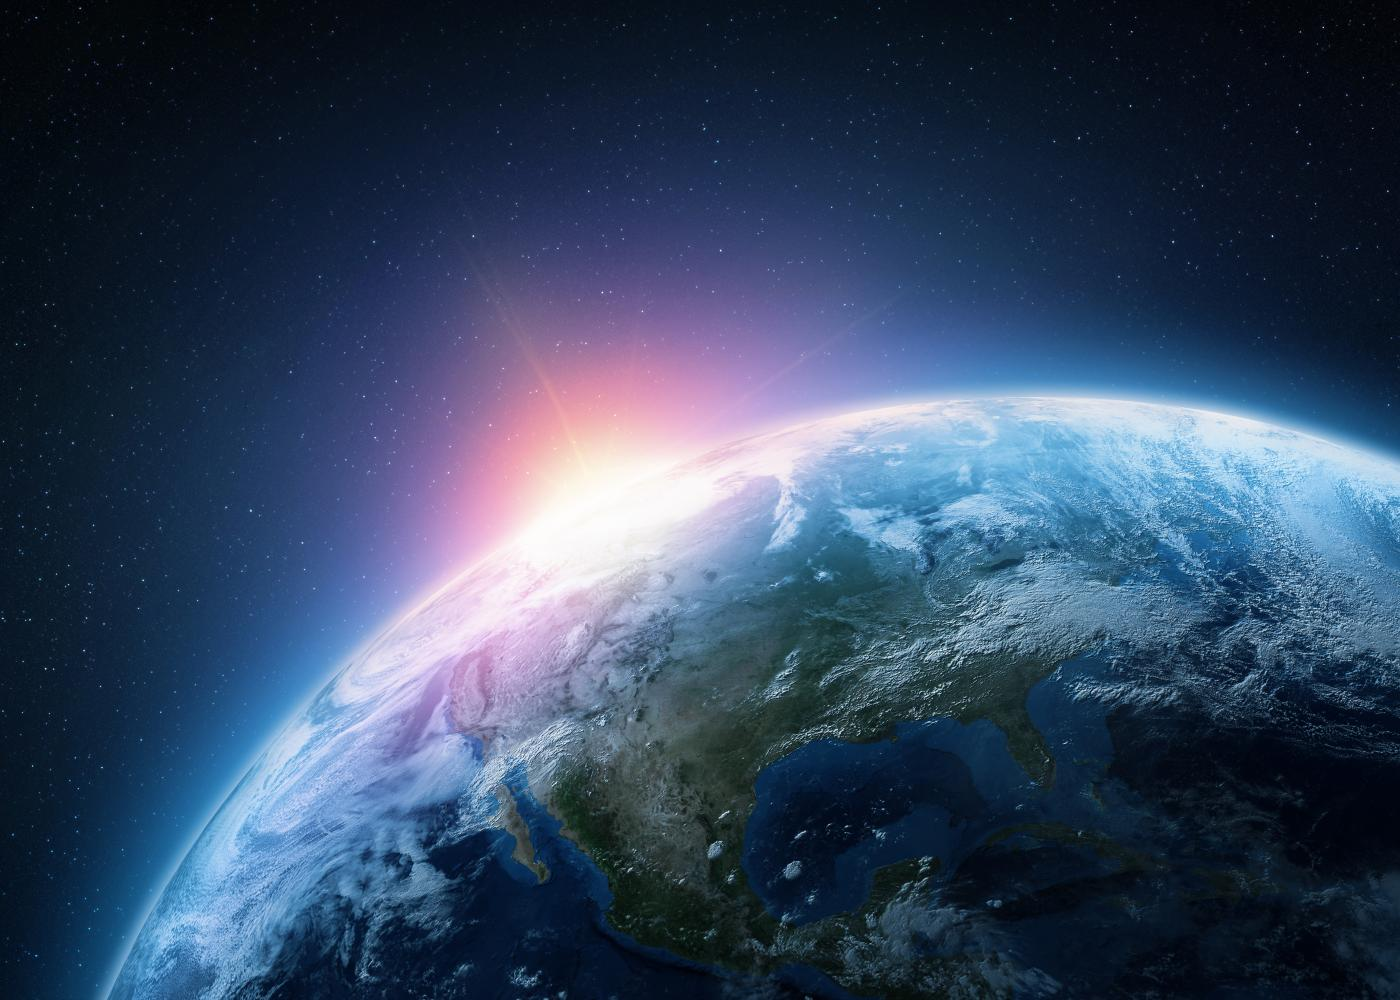 Stock photo of planet Earth